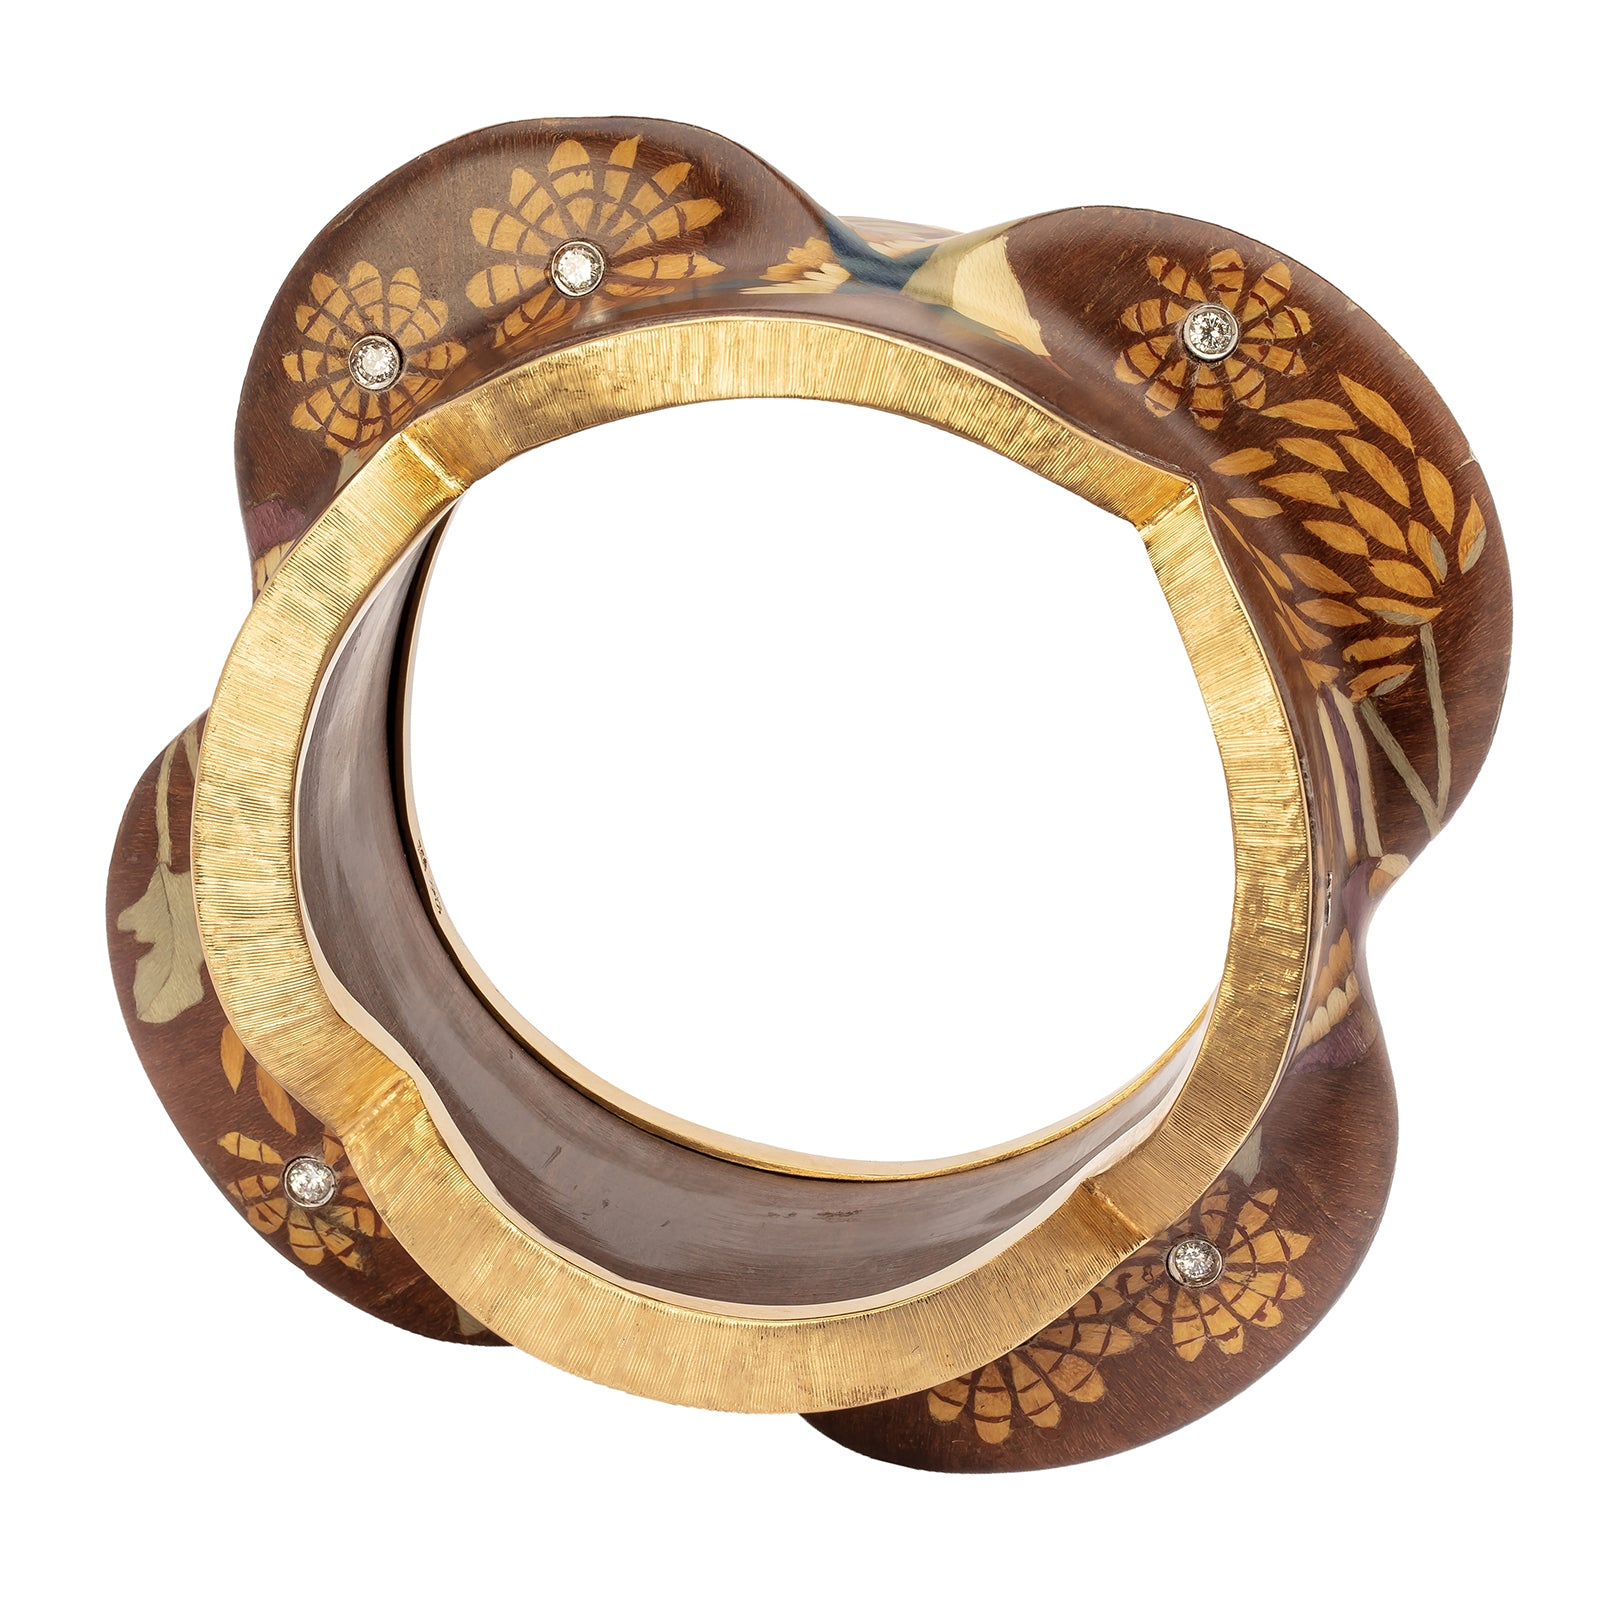 Silvia Furmanovich Marquetry Birds & Floral Bracelet - Bracelets - Broken English Jewelry